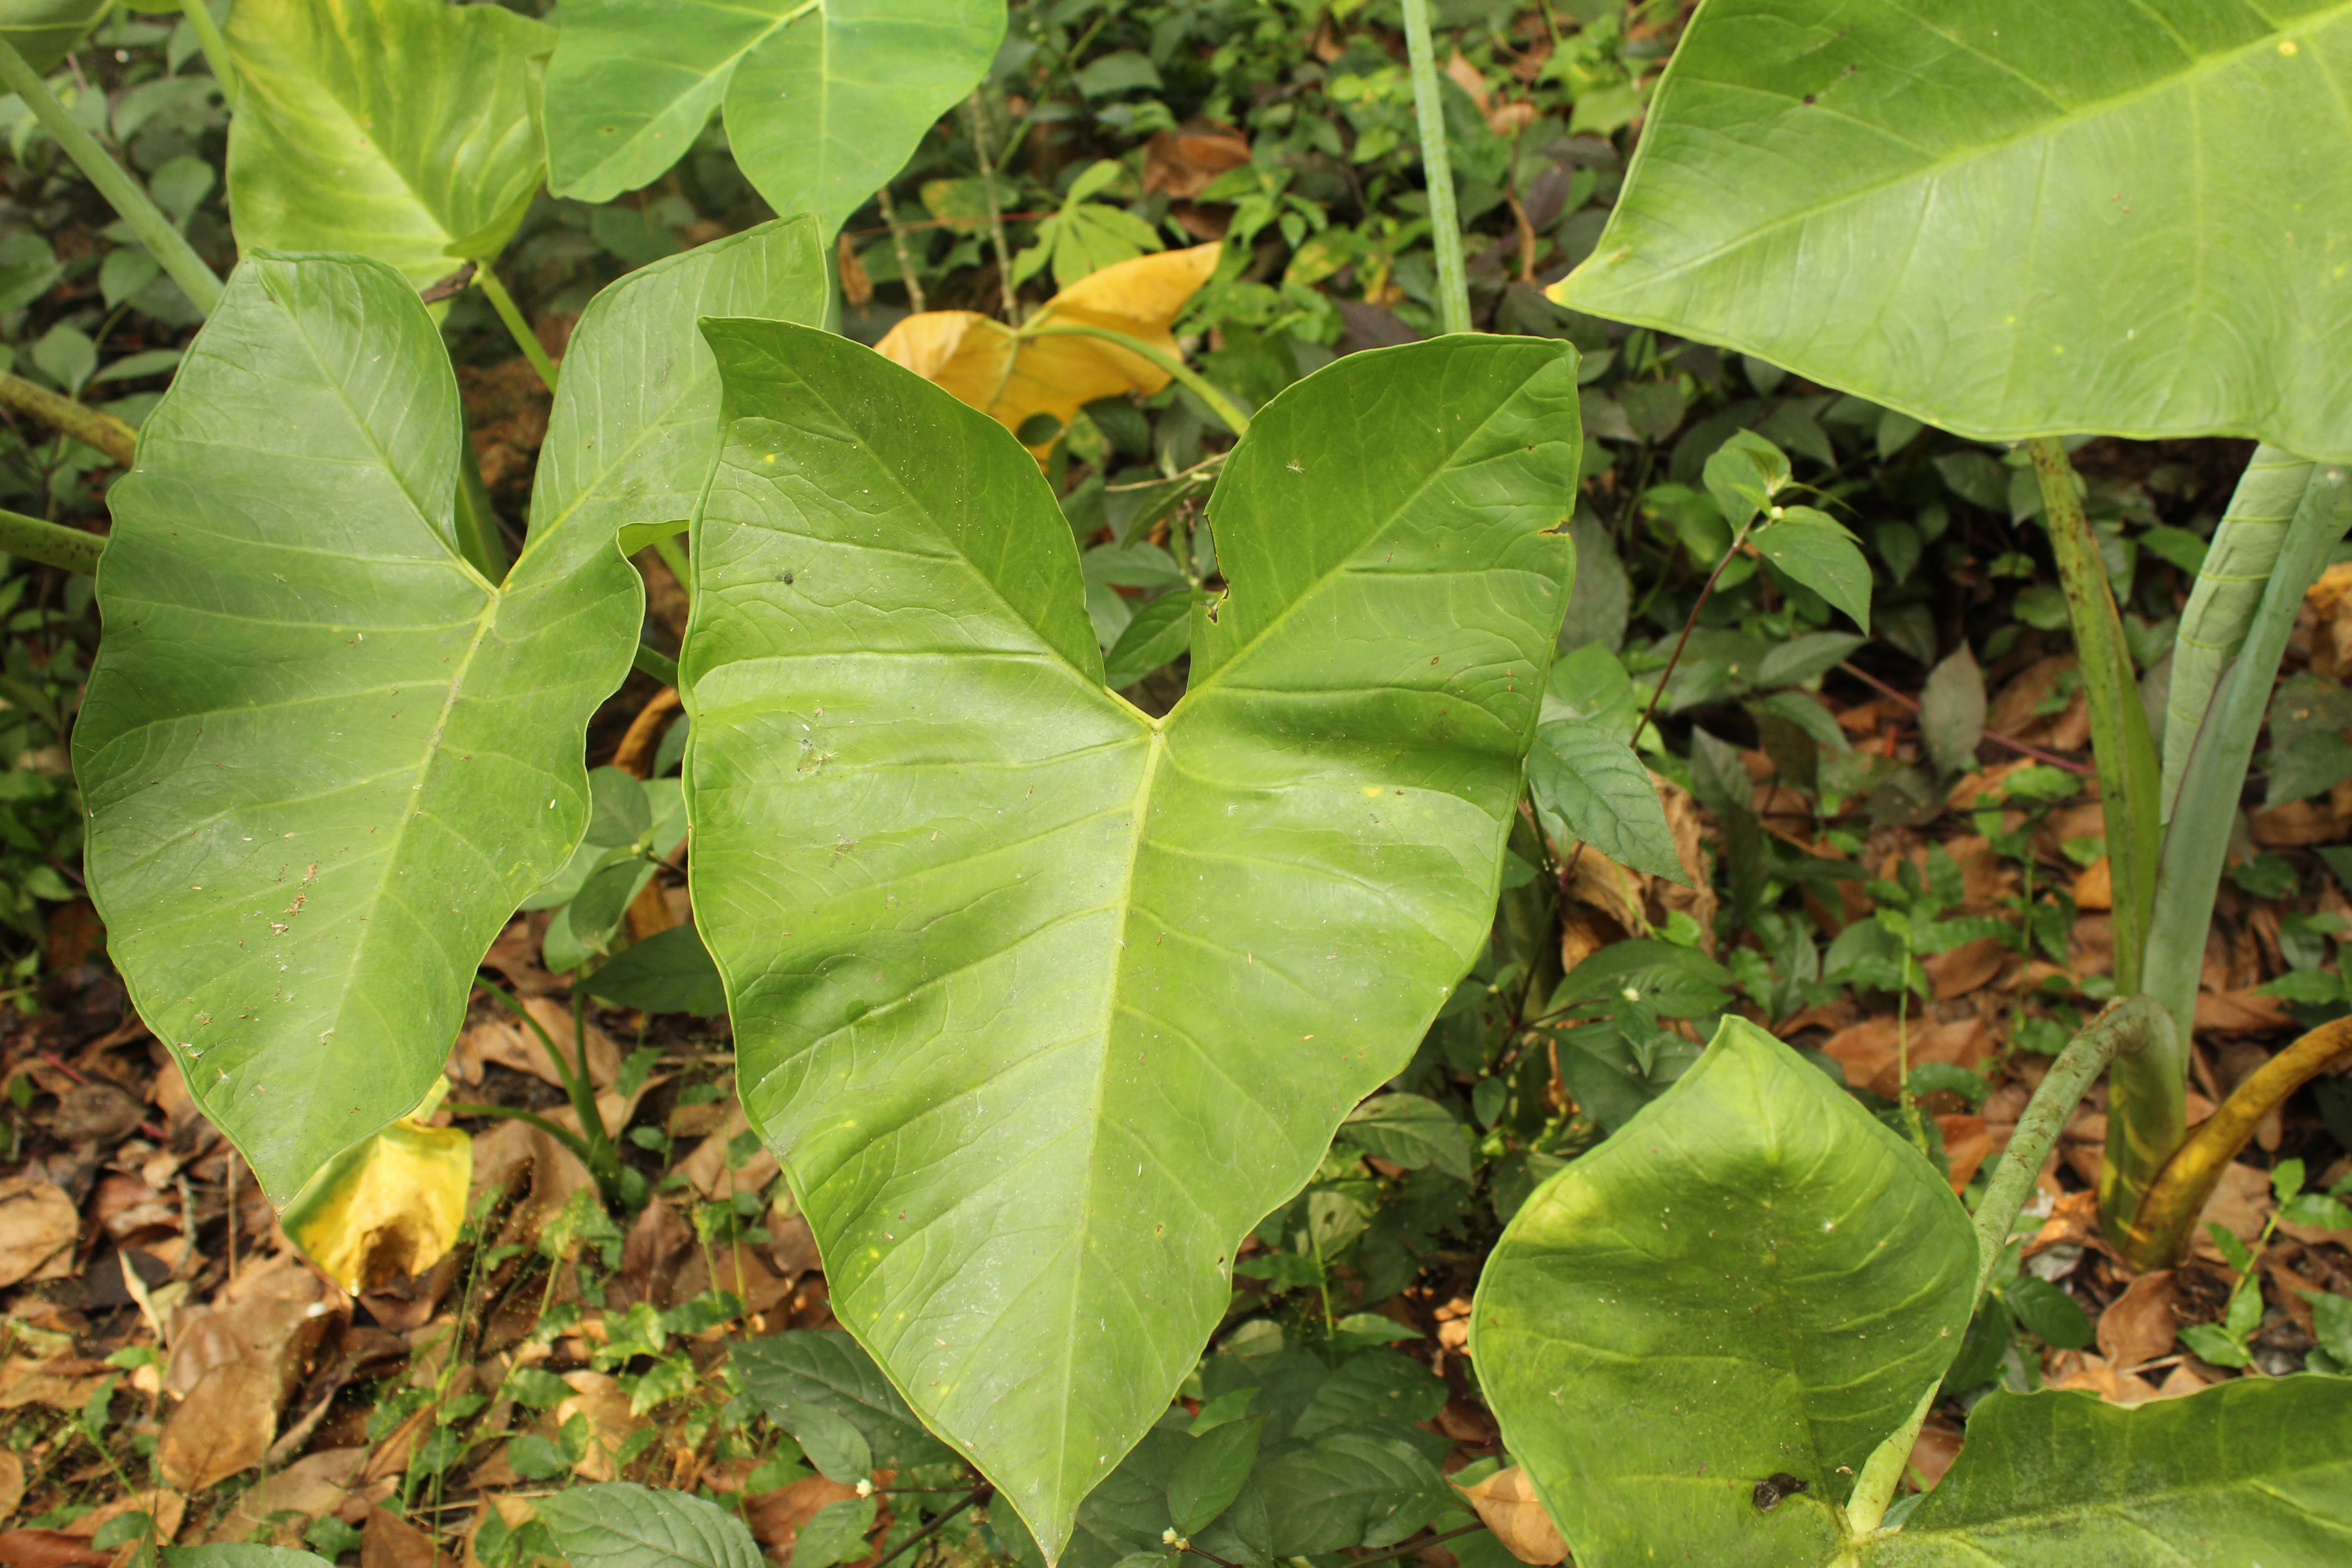 Free stock photo of Big leaf, green leaves, green park, kitchen garden